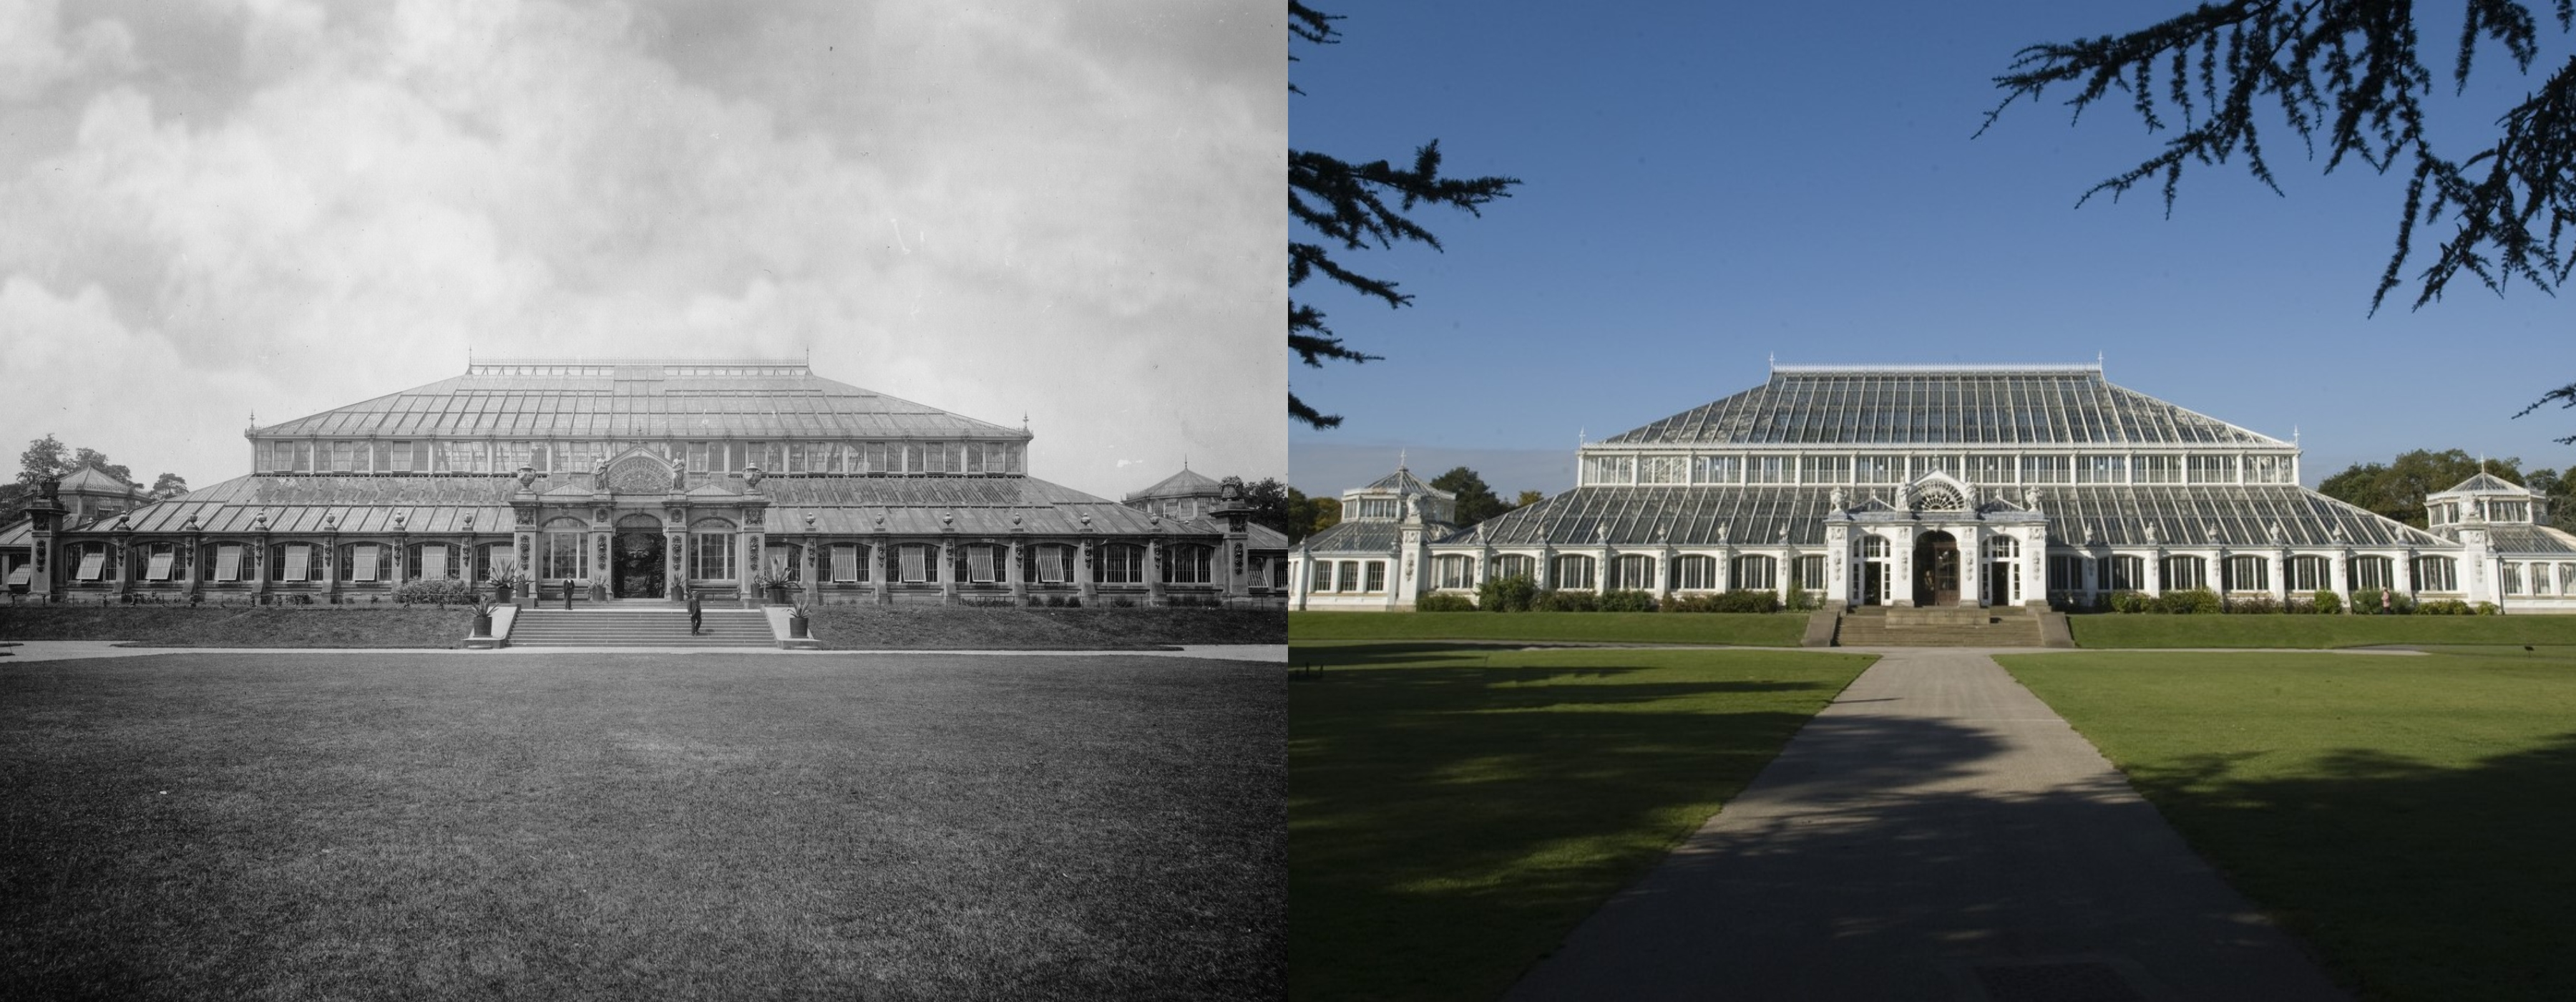 Temperate House then and now